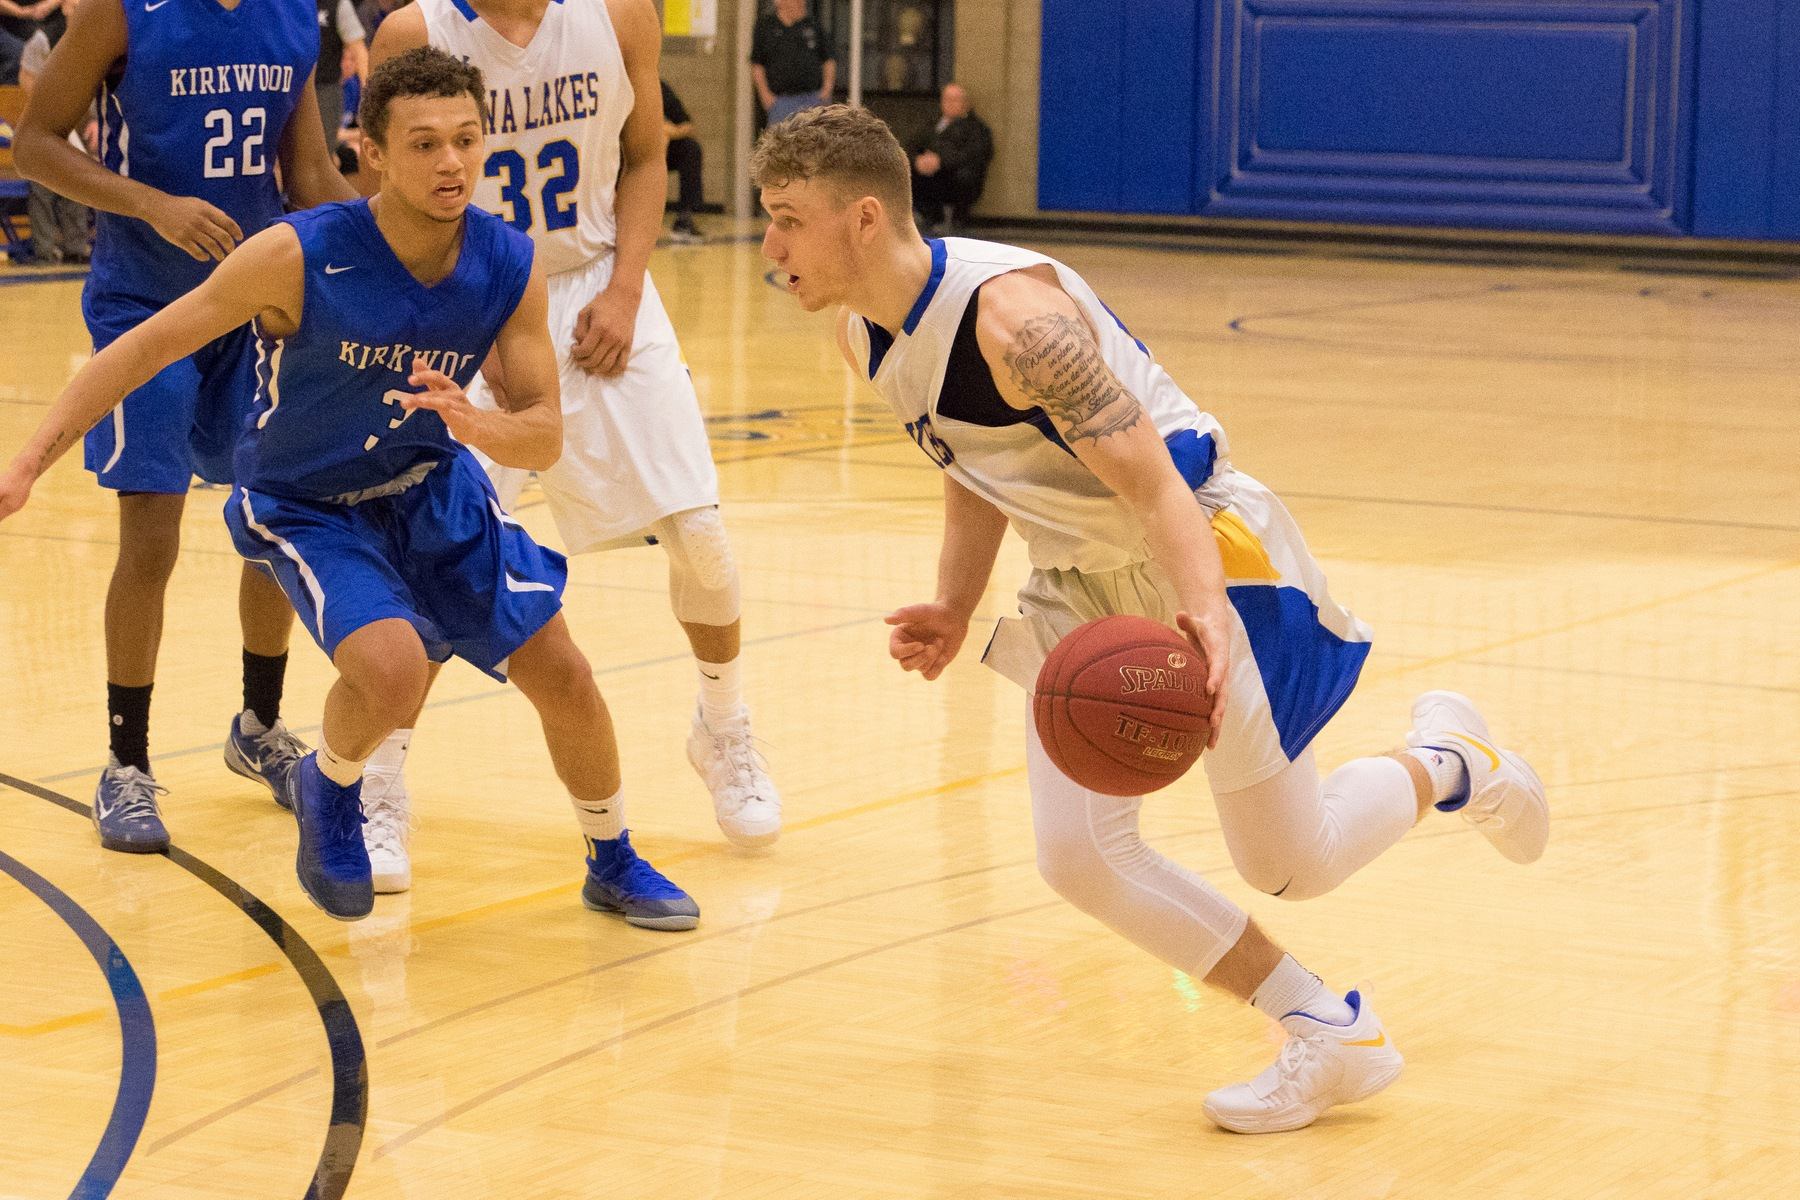 Lakers beat NIACC 79-72